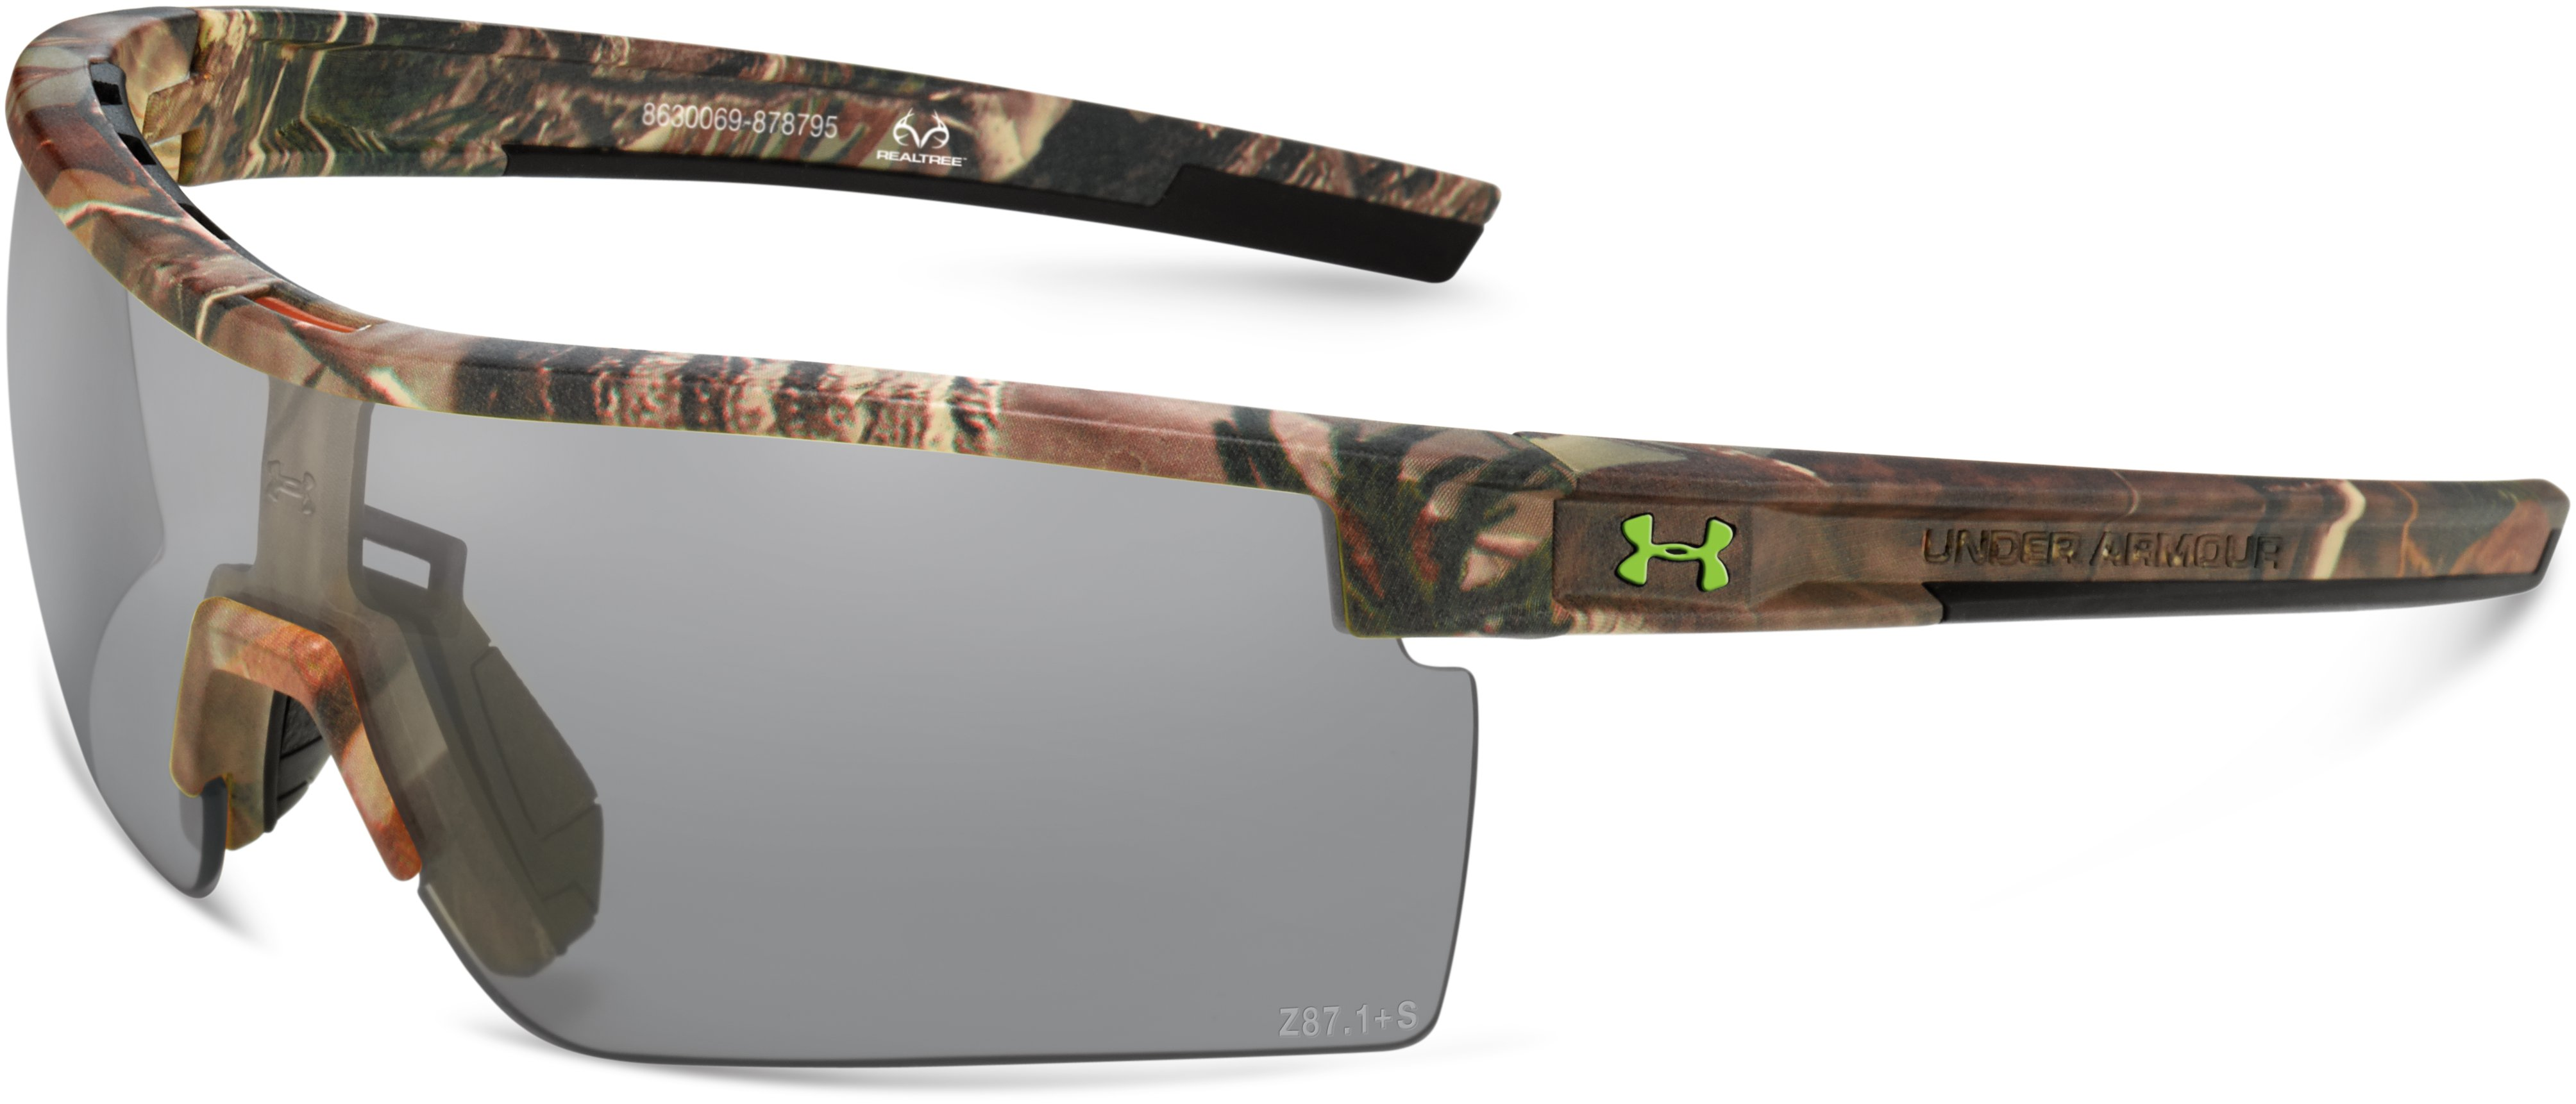 UA Freedom Interchange Camo Tactical Sunglasses, Realtree AP,